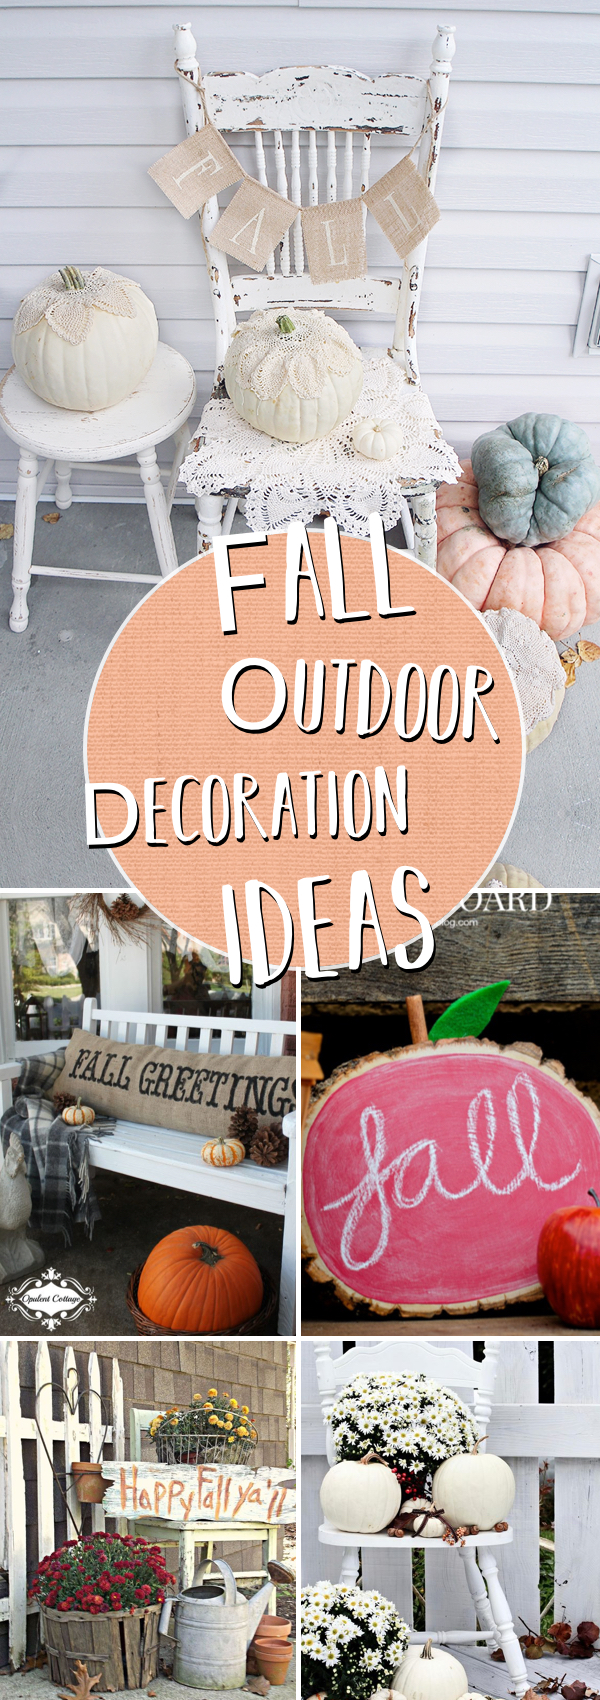 20 Incredible Inspirations for a Fall Outdoor Decor Getting The Home Season-Ready